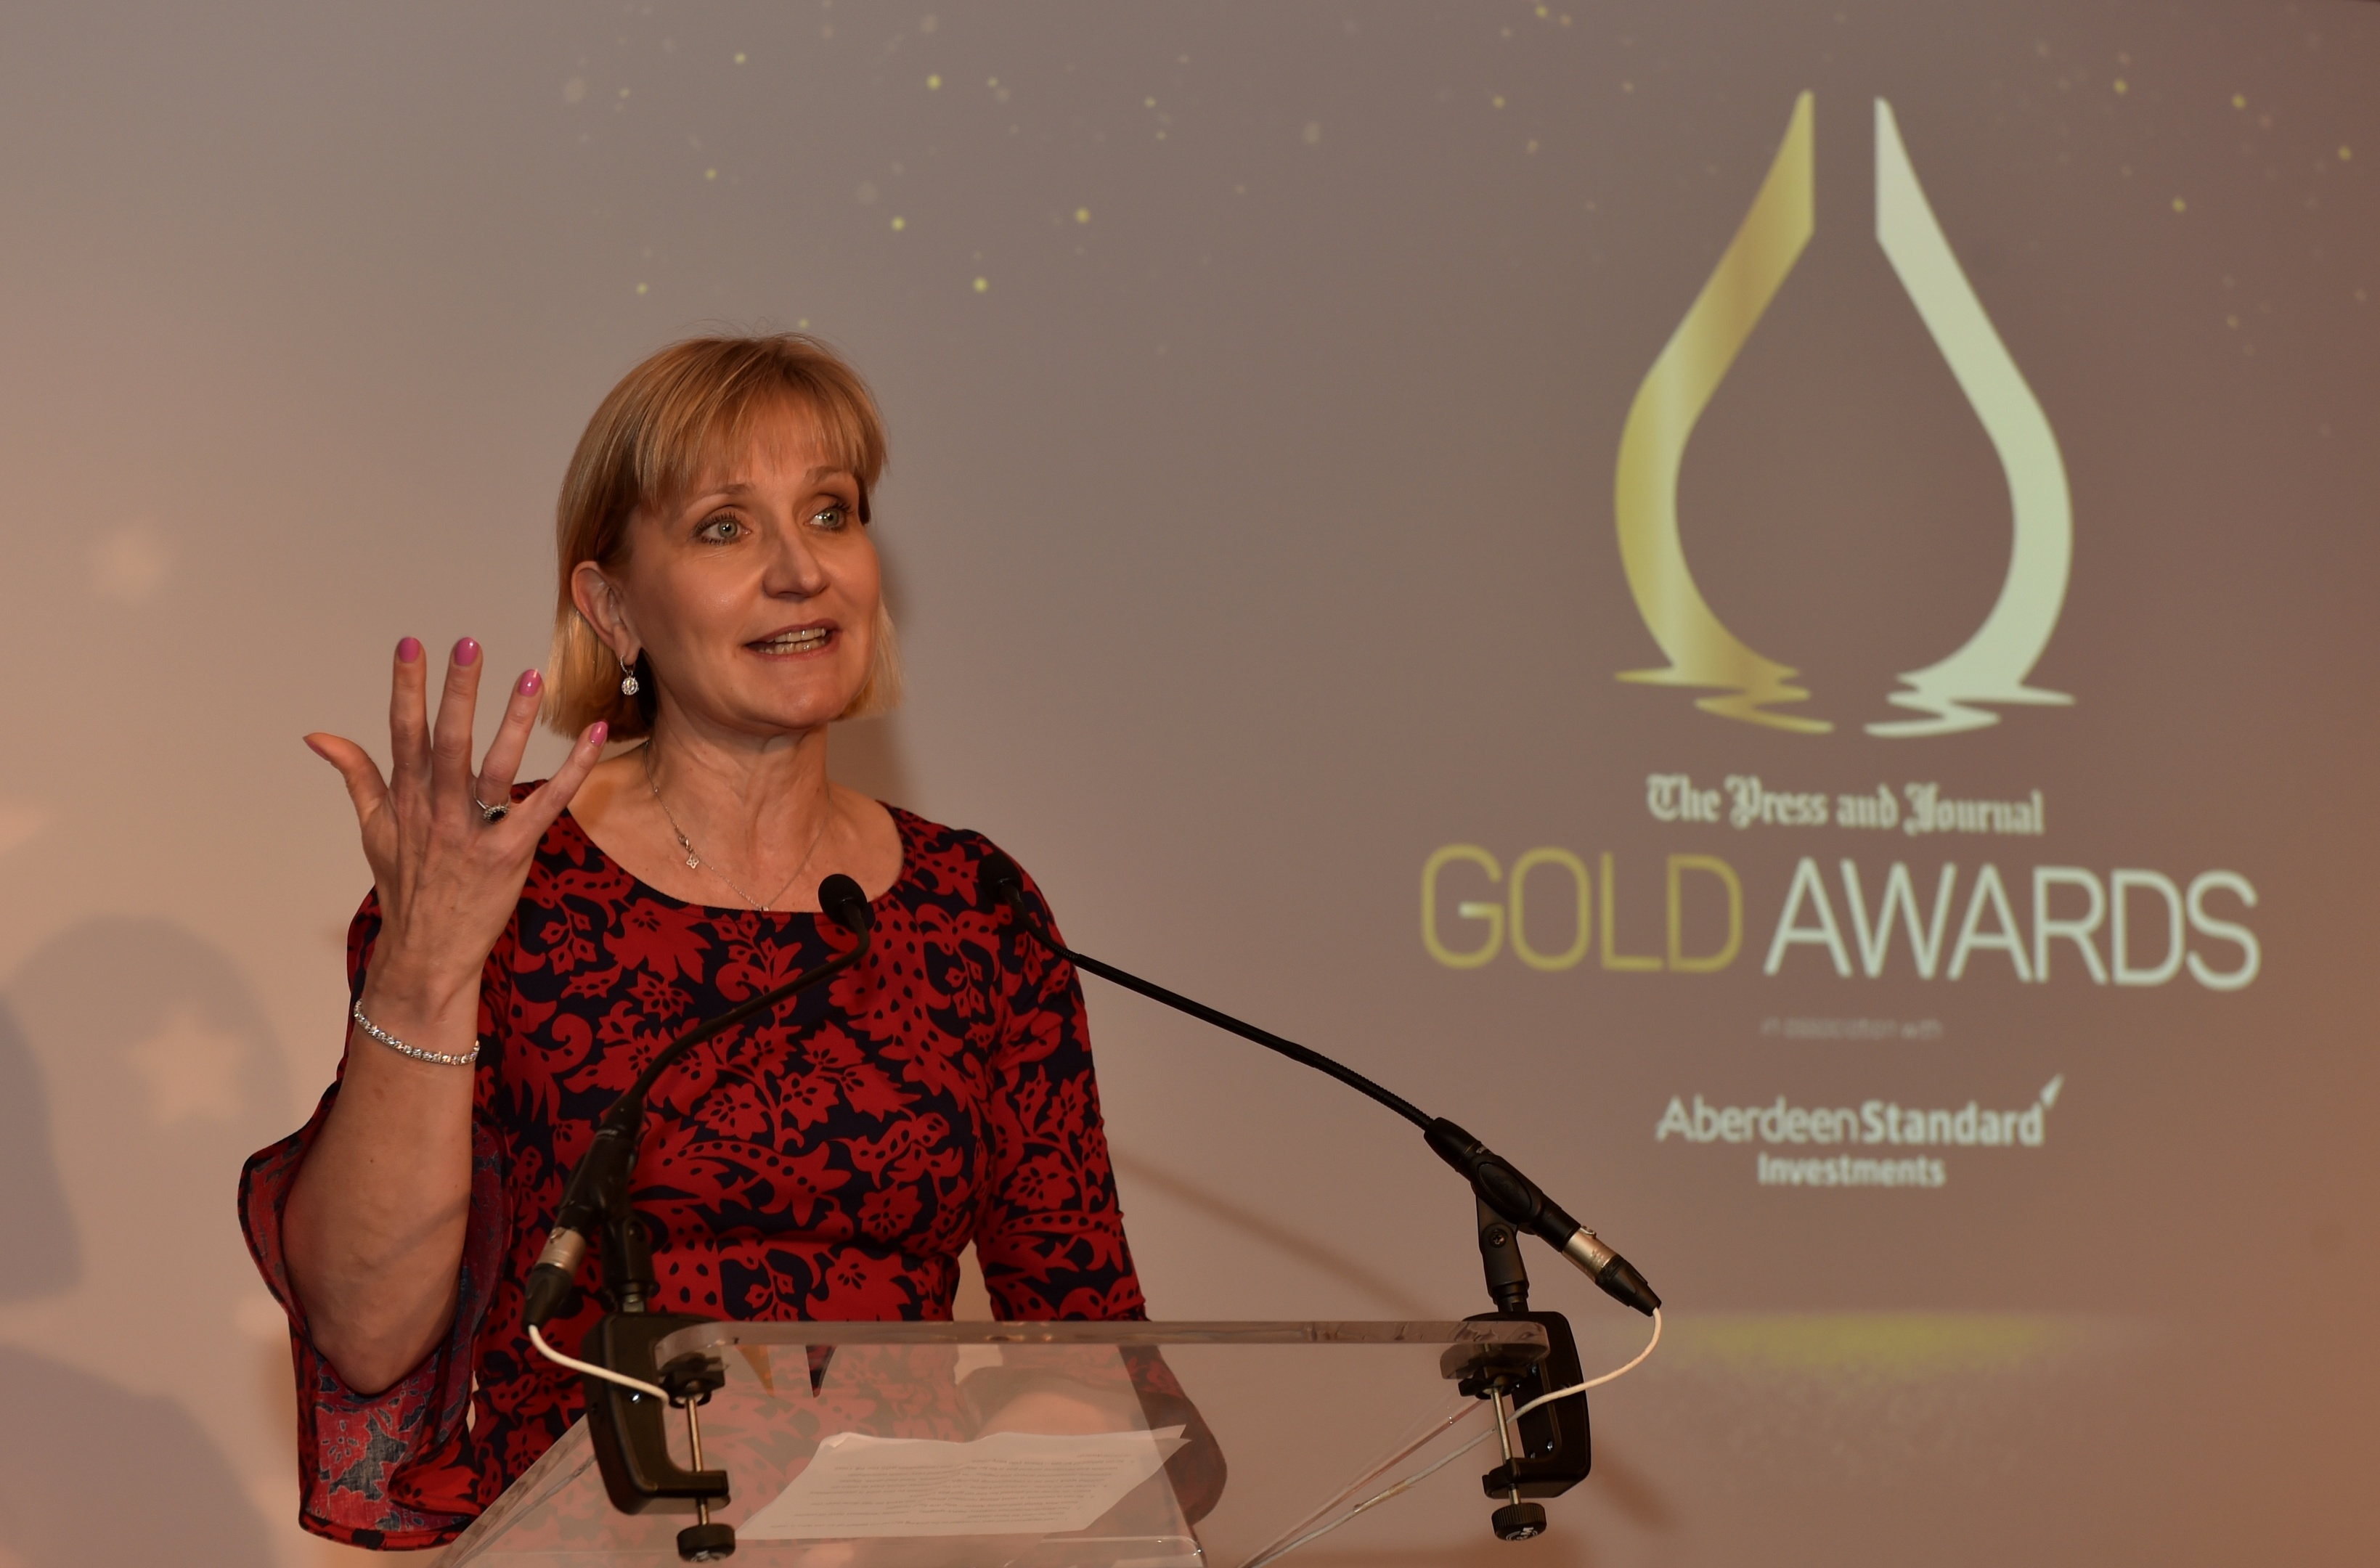 Gold awards held at the Marcliffe Hotel and Spa, Aberdeen. Deirdre Michie. Picture by COLIN RENNIE September 8, 2017.